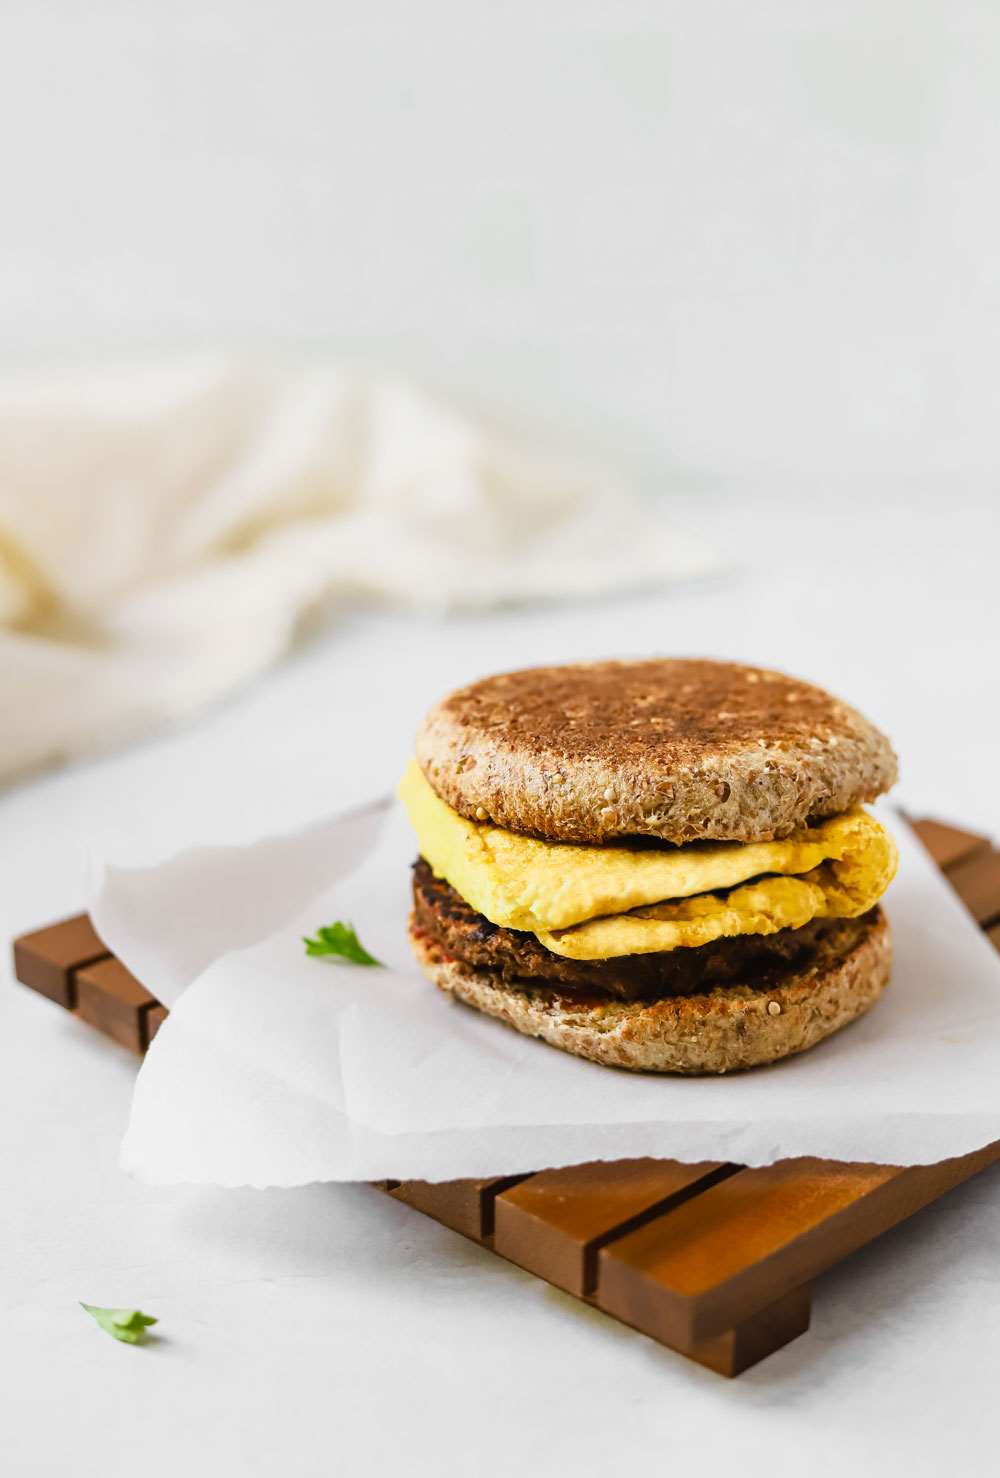 Delicious breakfast sandwich with vegan egg, vegan sausage patty, and toasted english muffin on a piece of white parchment paper.